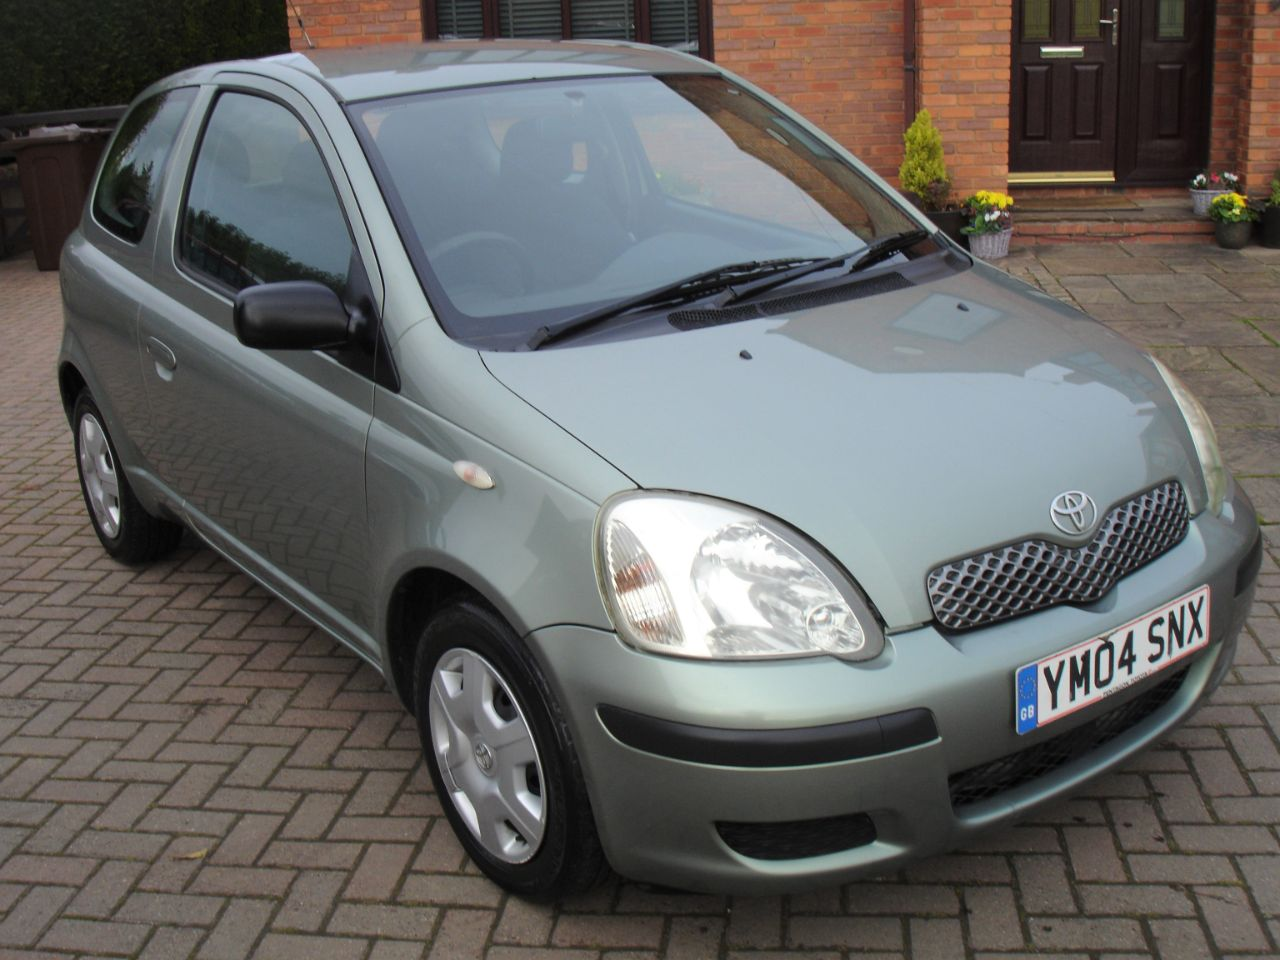 Toyota Yaris 1.3 VVT-i T3 3dr Hatchback Petrol Metallic Green at Level Pitch Selby